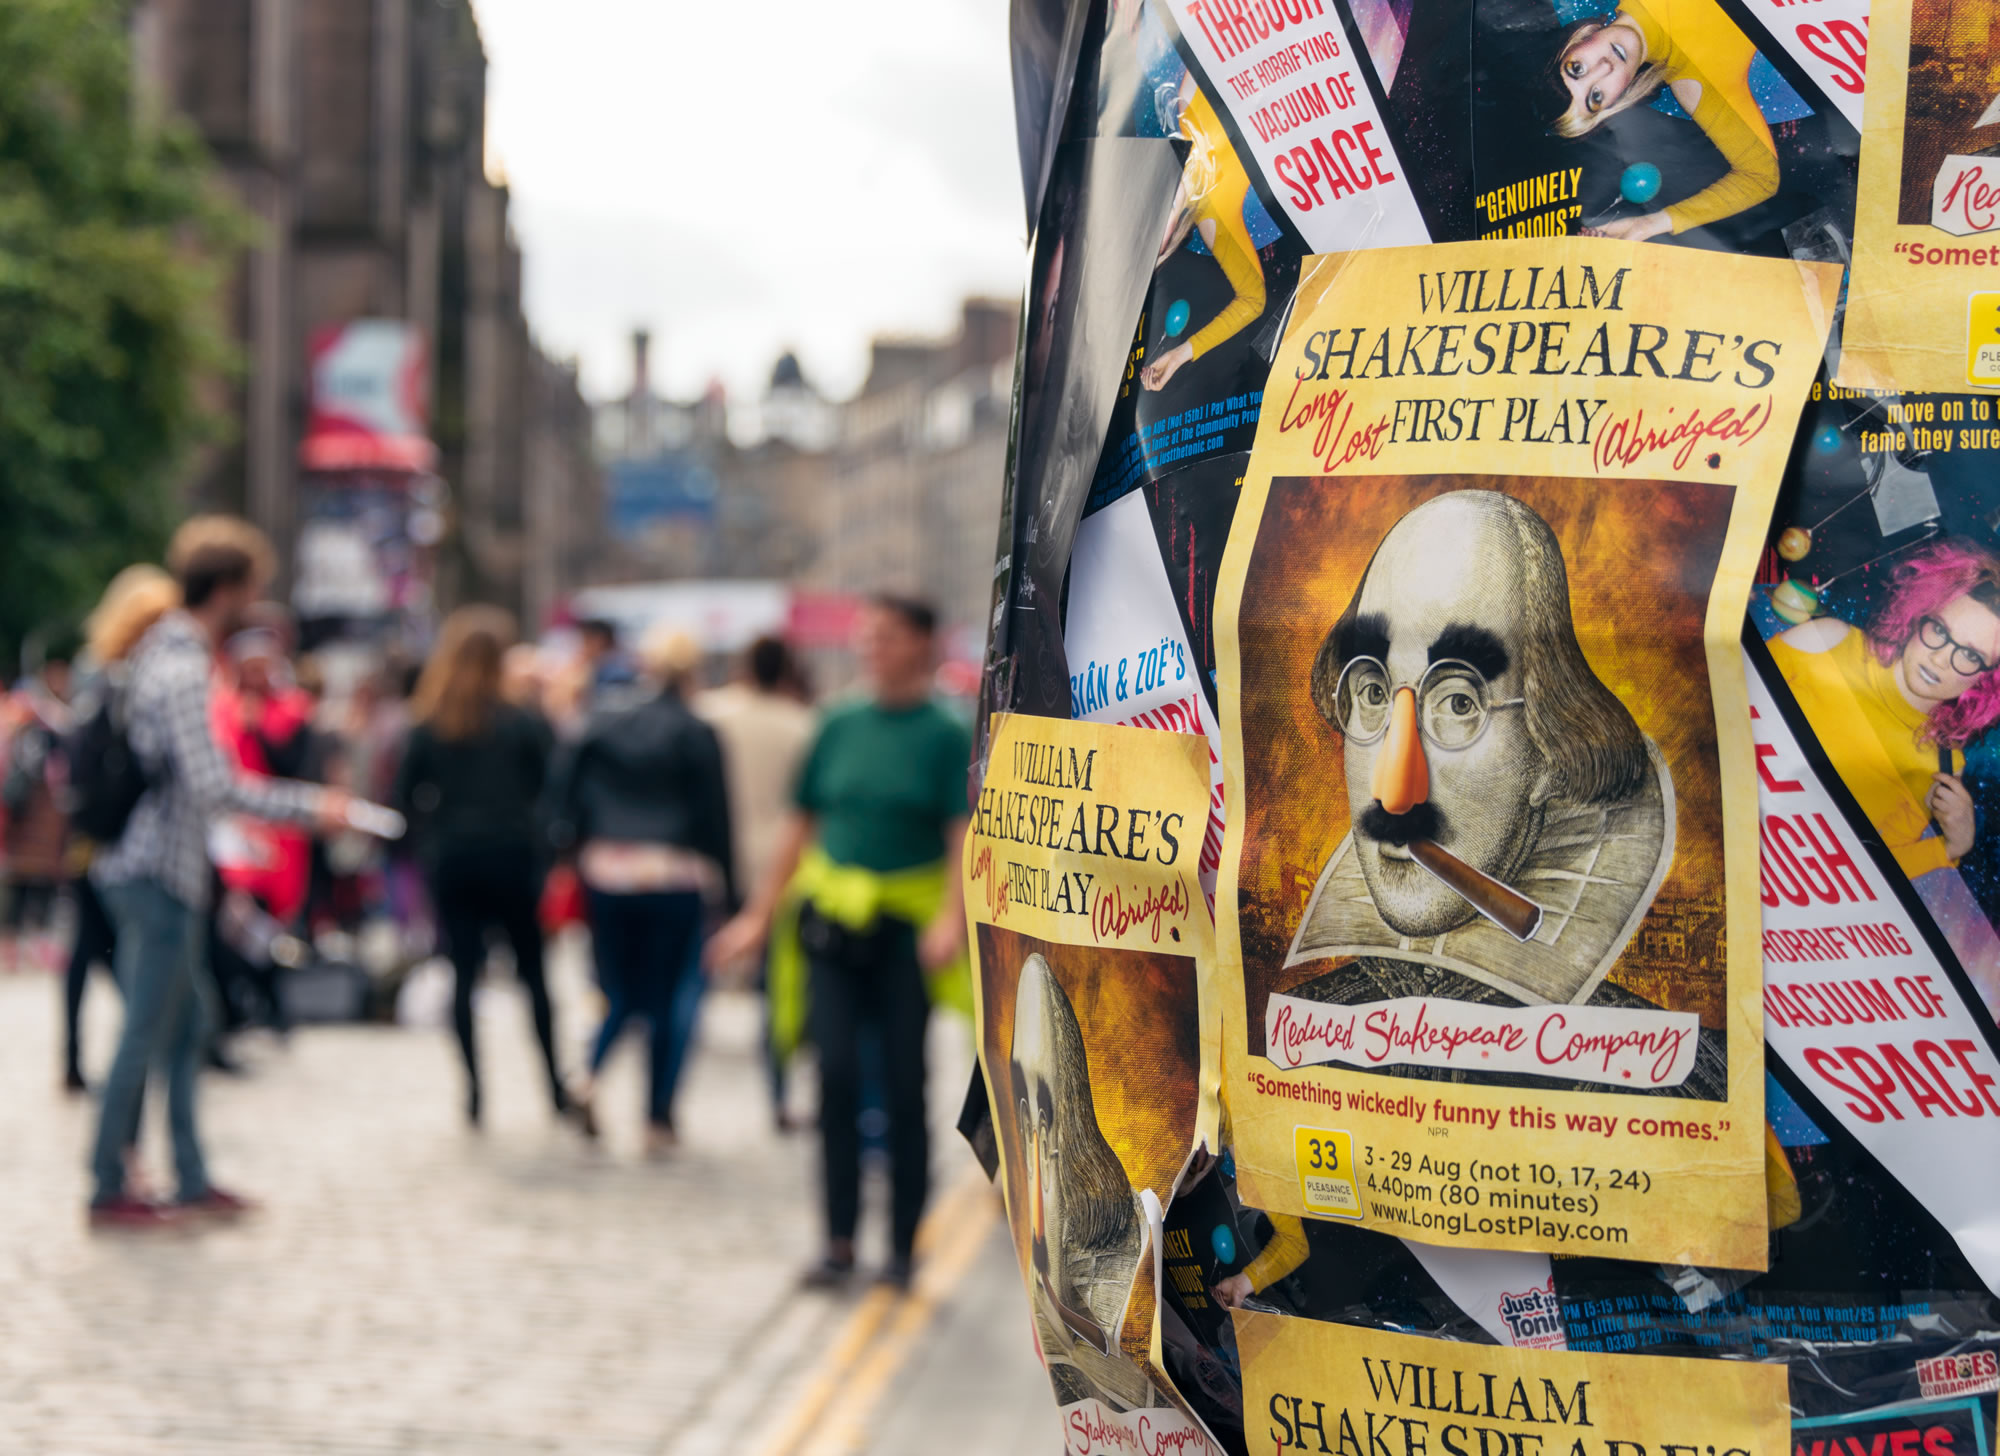 Visit the Edinburgh Fringe Festival